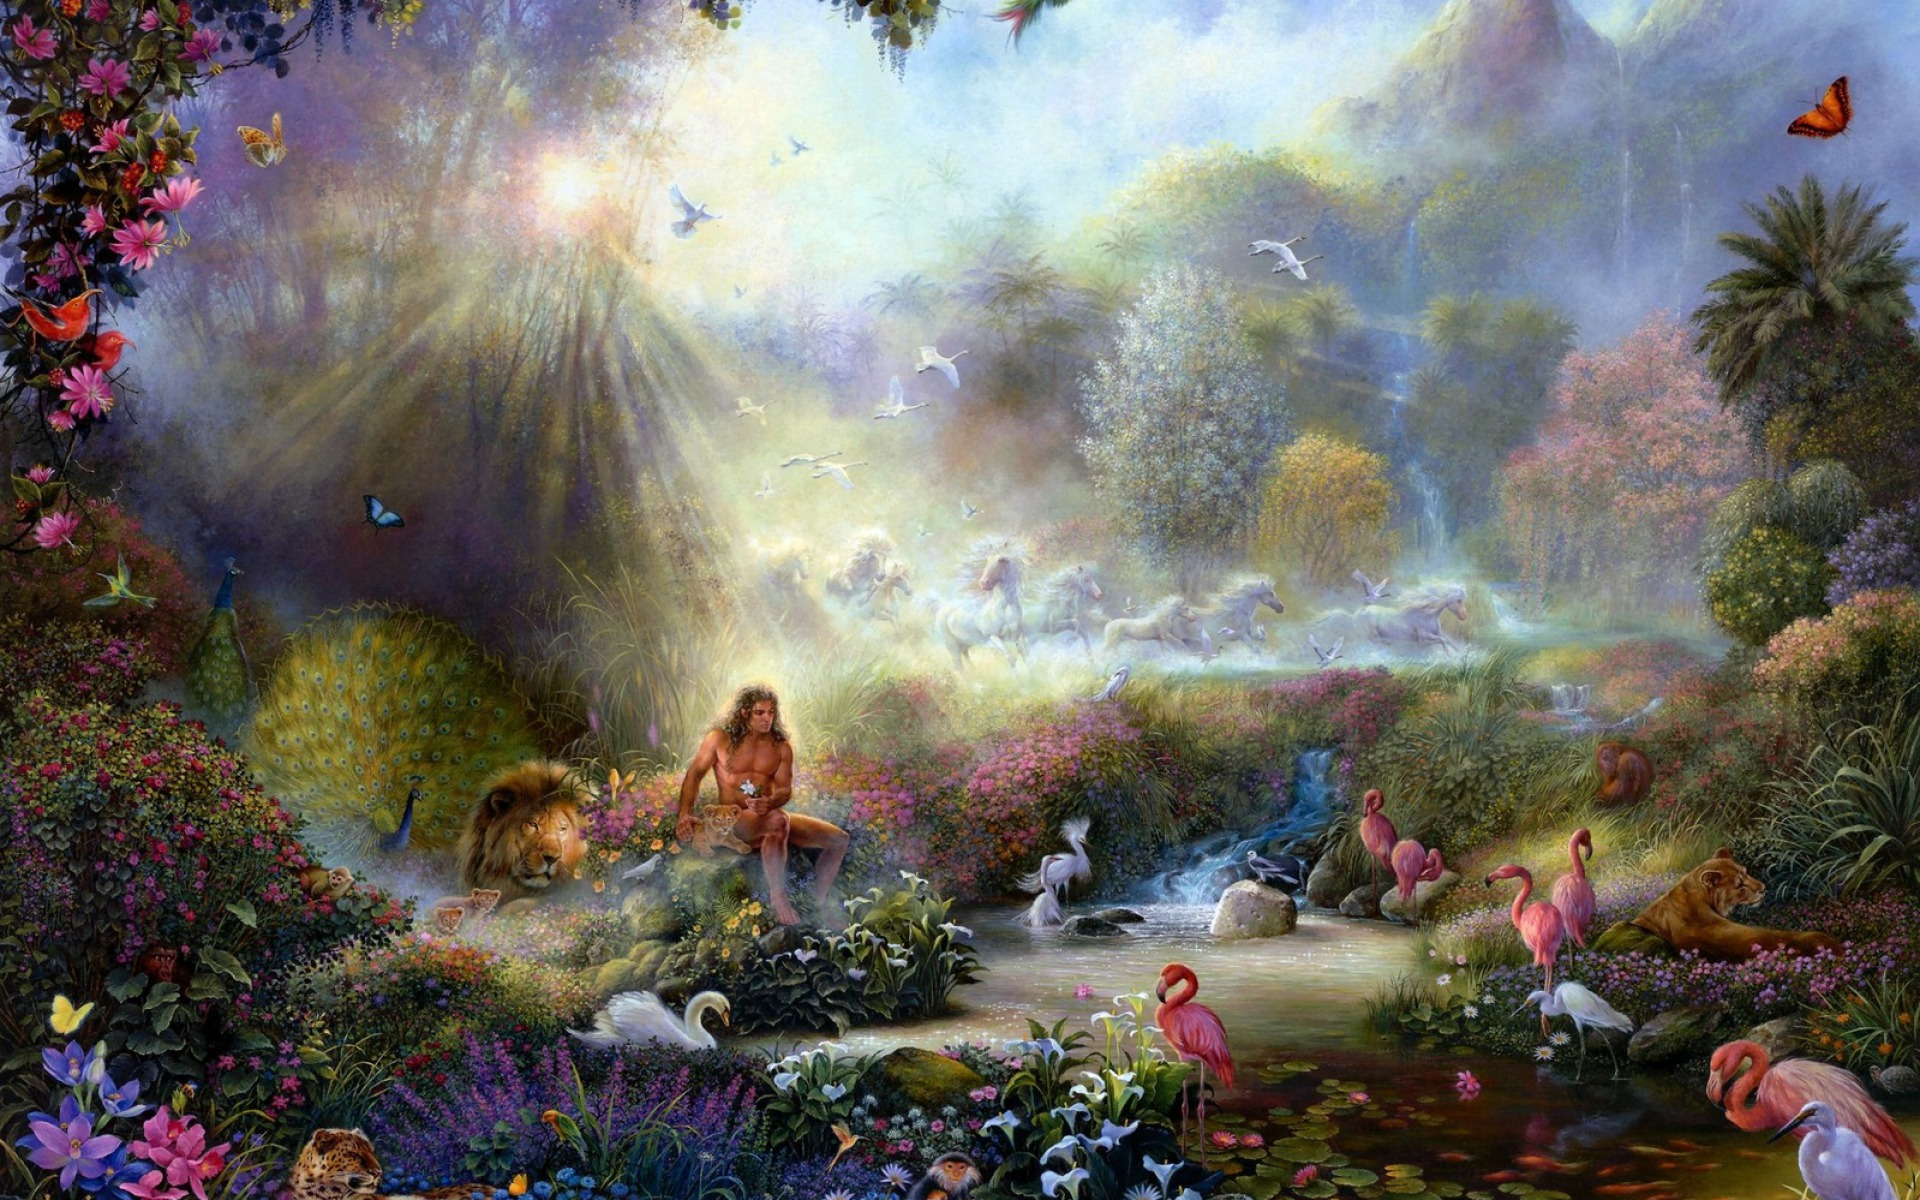 a analysis of good and evil in garden of eden Genesis 3 new international and you will be like god, knowing good and evil of the garden of eden cherubim and a flaming sword flashing back and forth to.